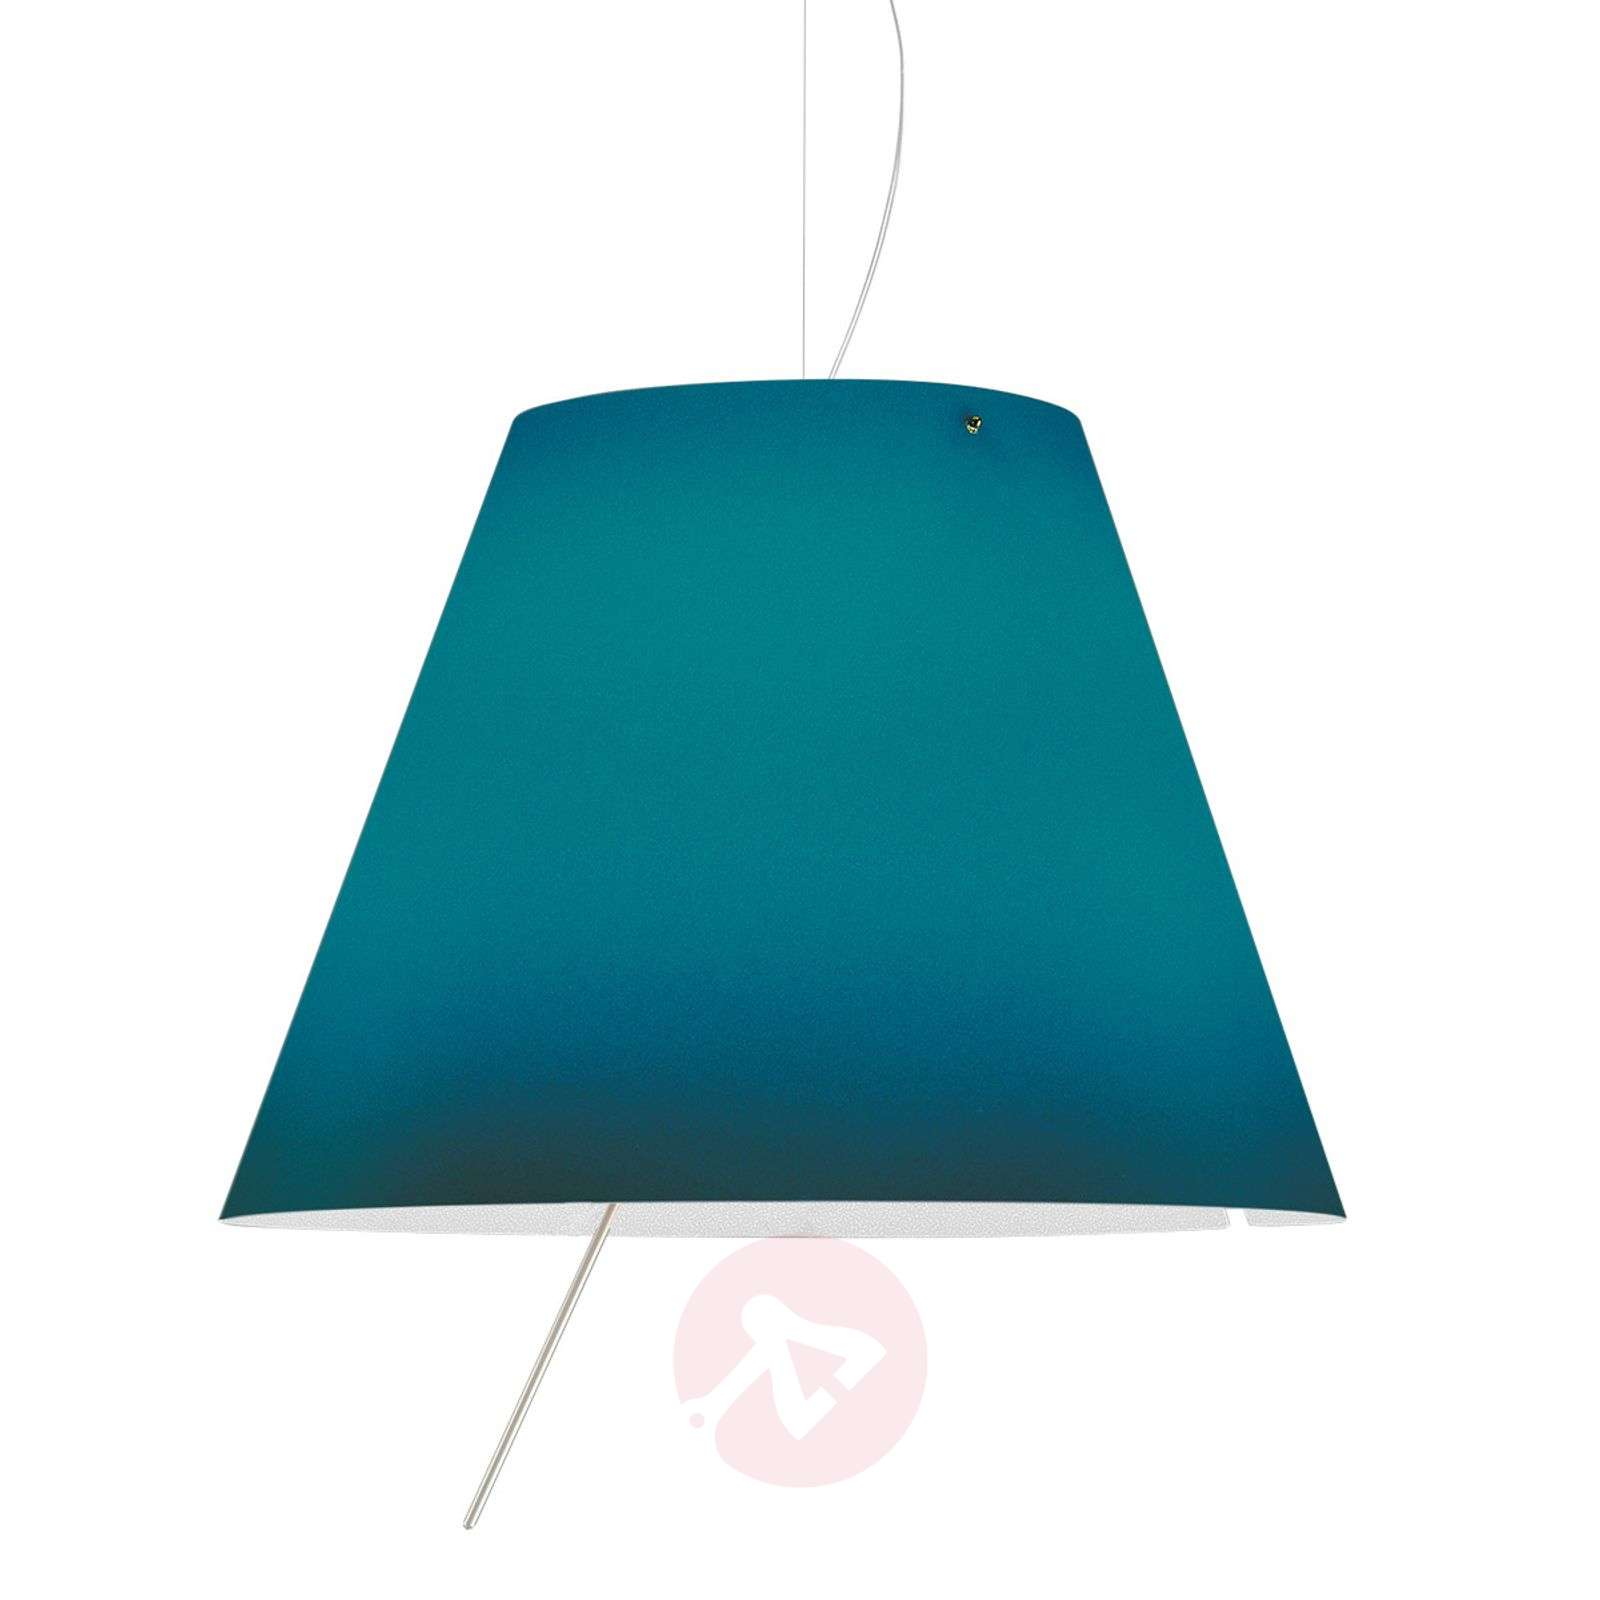 Suspension LED bleue Costanza, réglable en hauteur-6030158-01